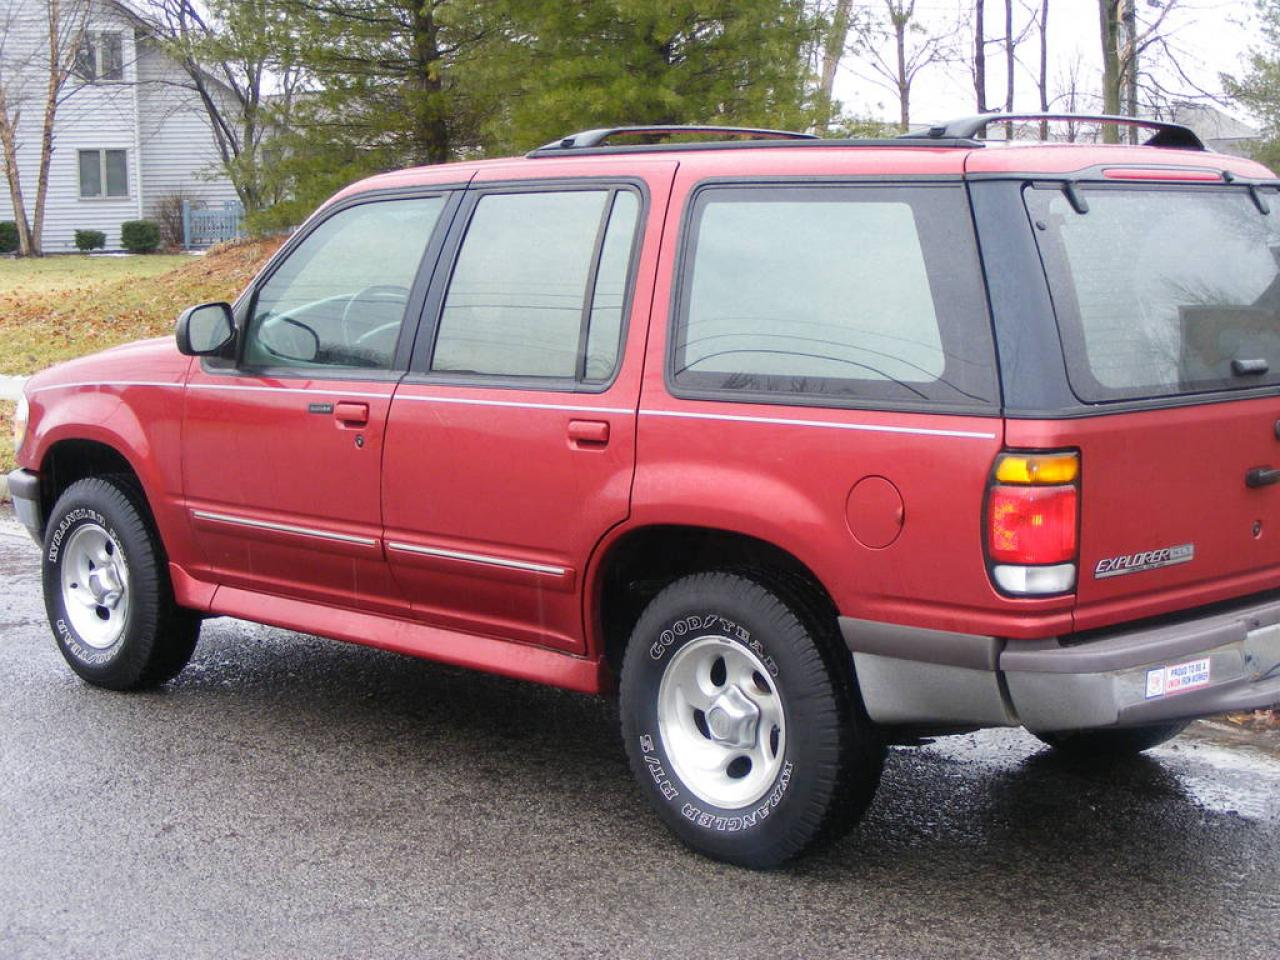 1997 ford explorer information and photos zombiedrive for 1997 ford explorer window problems